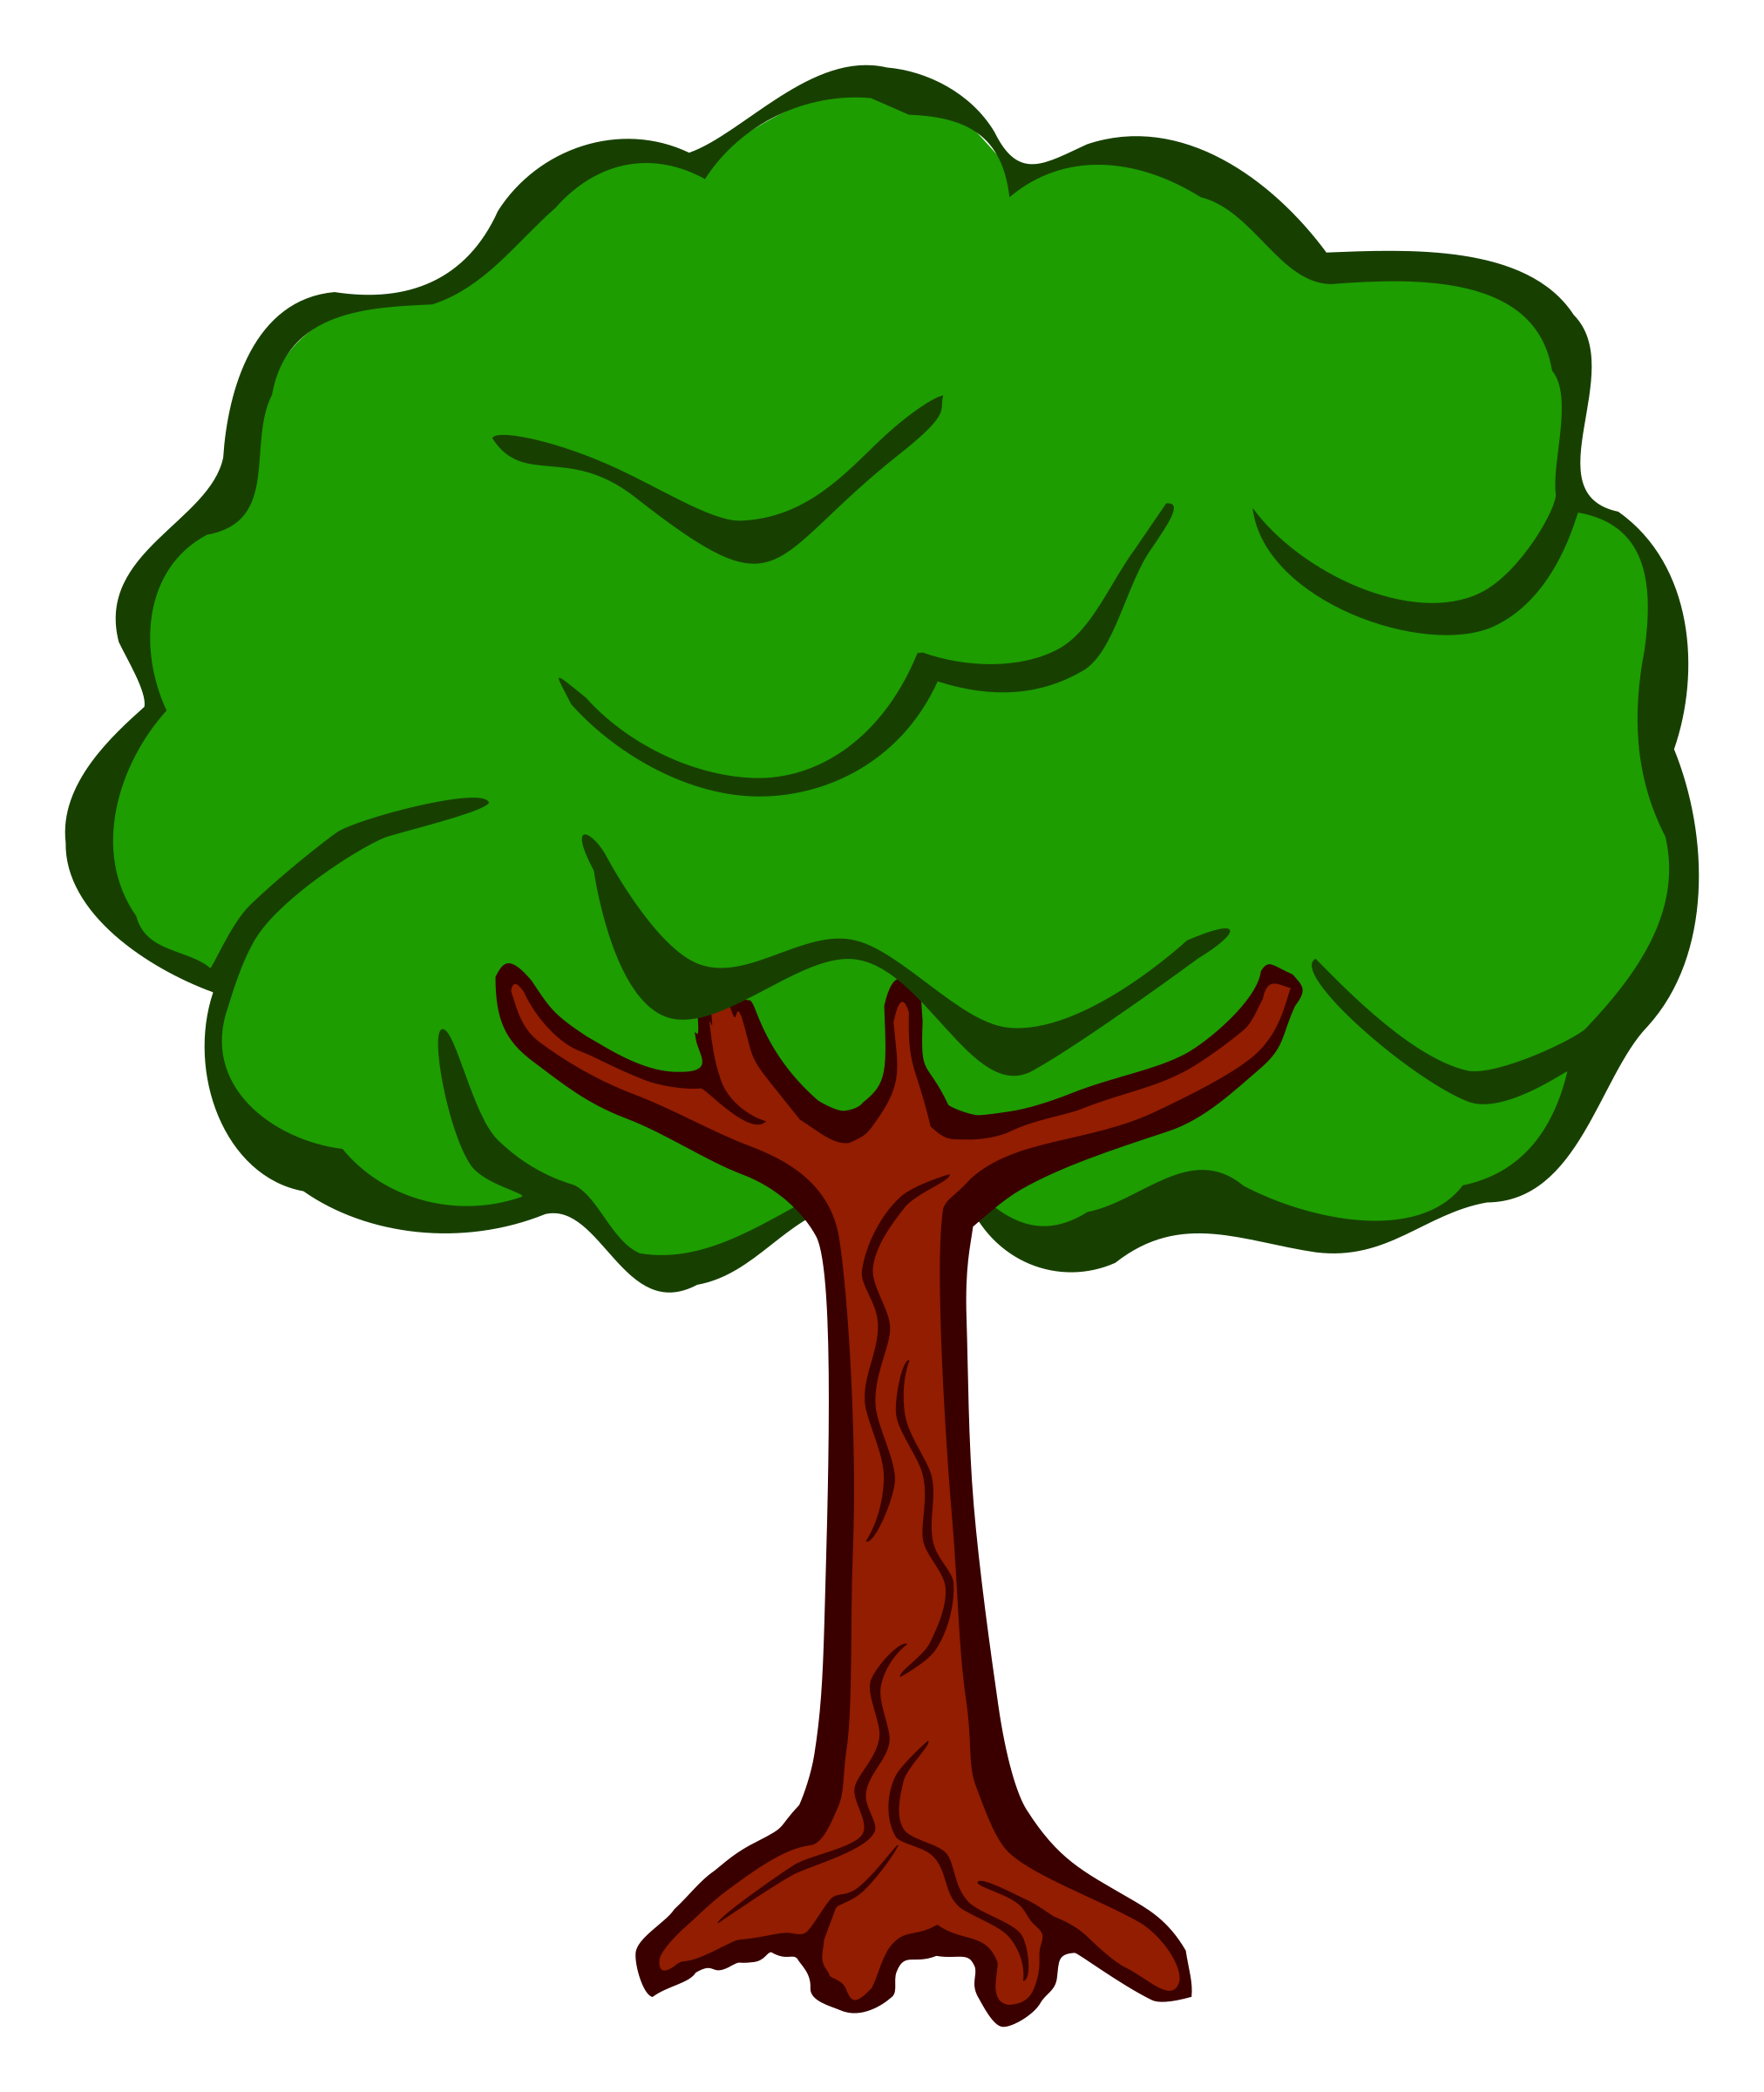 Cute tree clipart vector transparent Clipart - tree - coloured vector transparent